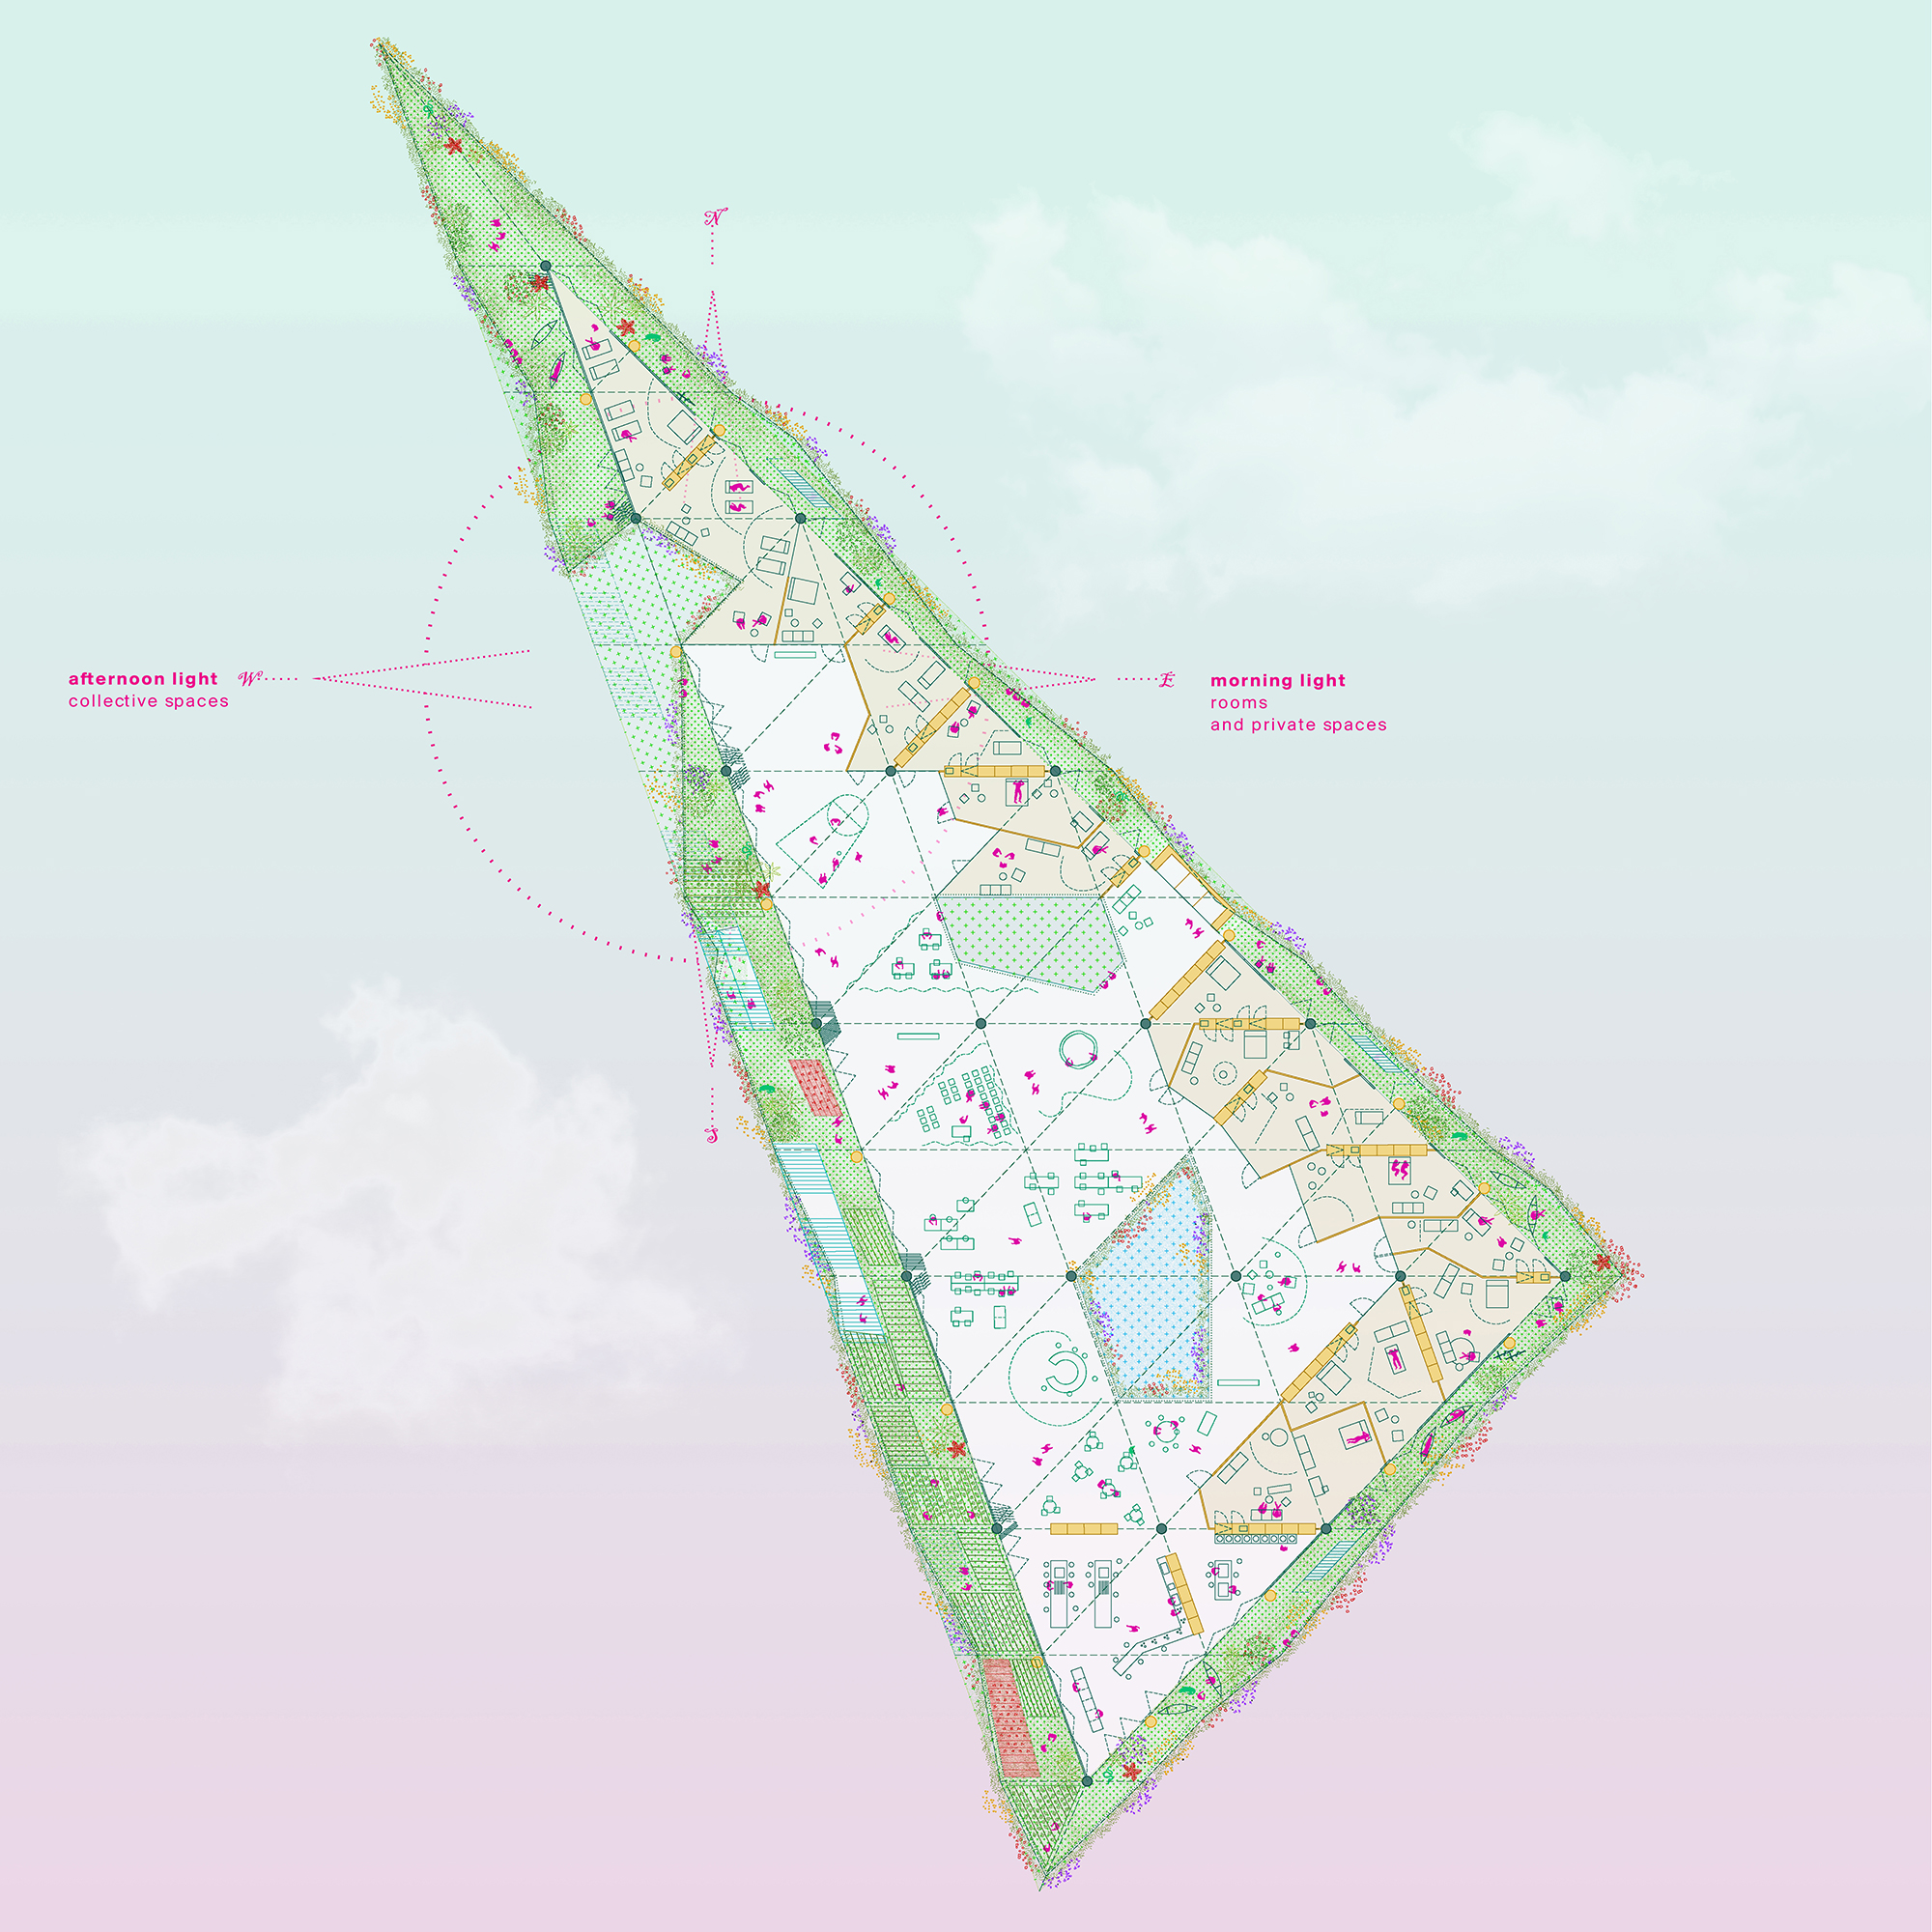 h3o hybrid parliament europan 15 rotterdam first prize inclusive architecture